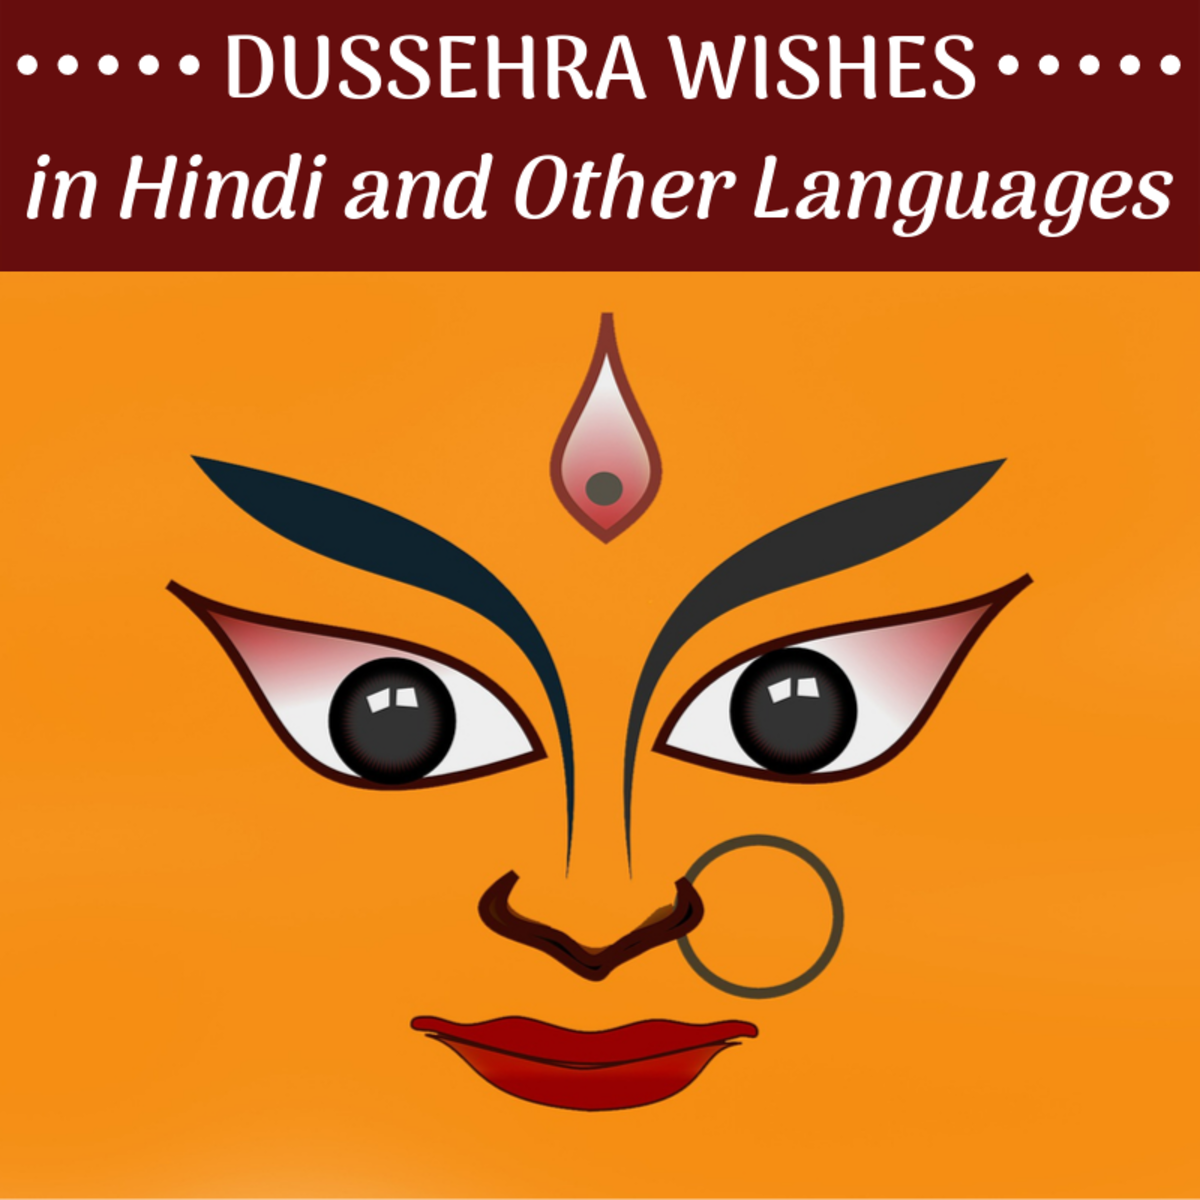 Dussehra and Durga Pooja Wishes in Hindi and Other Indian Languages